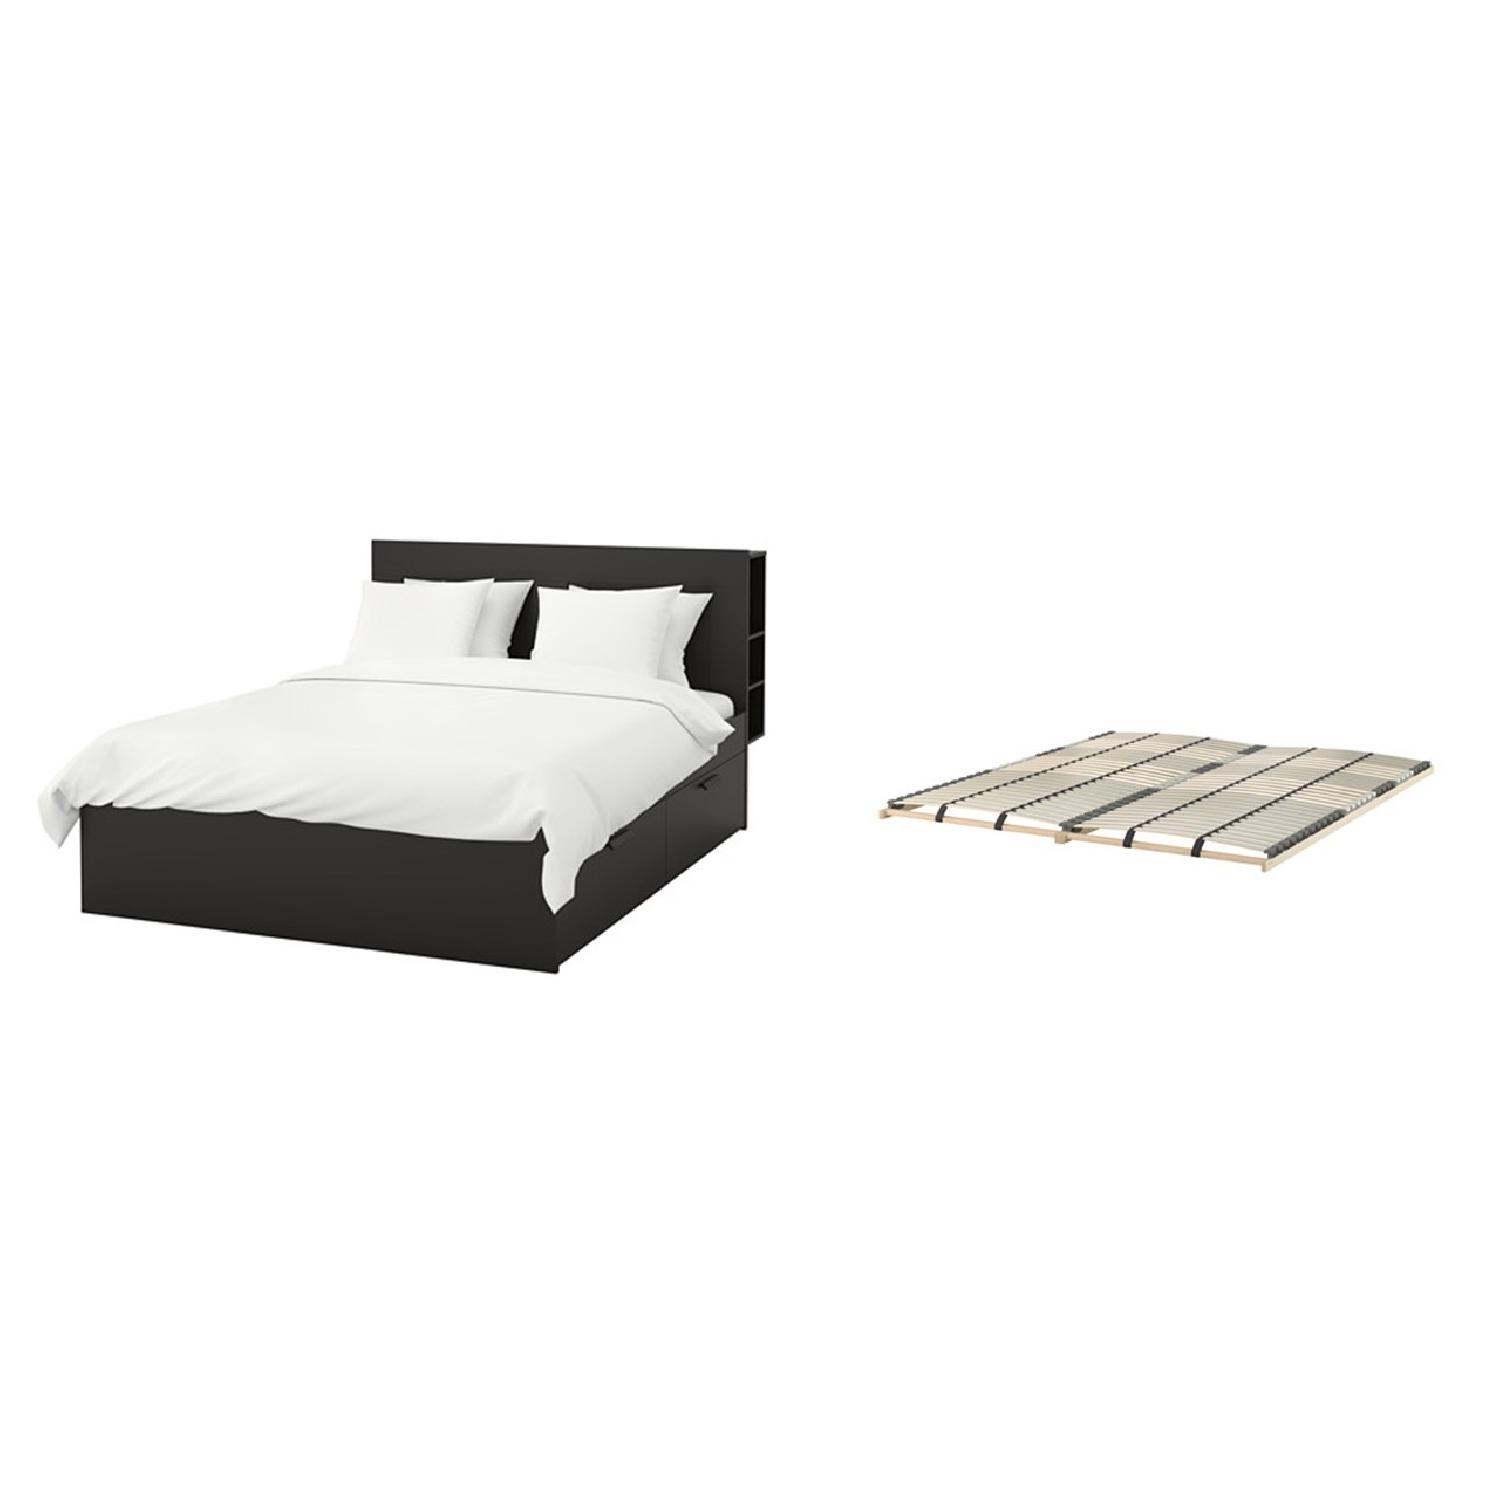 Ikea Boxspring Ervaring Hyllestad Matras Review Ikea Boxspring Ikea Boxspring Bett Ideas